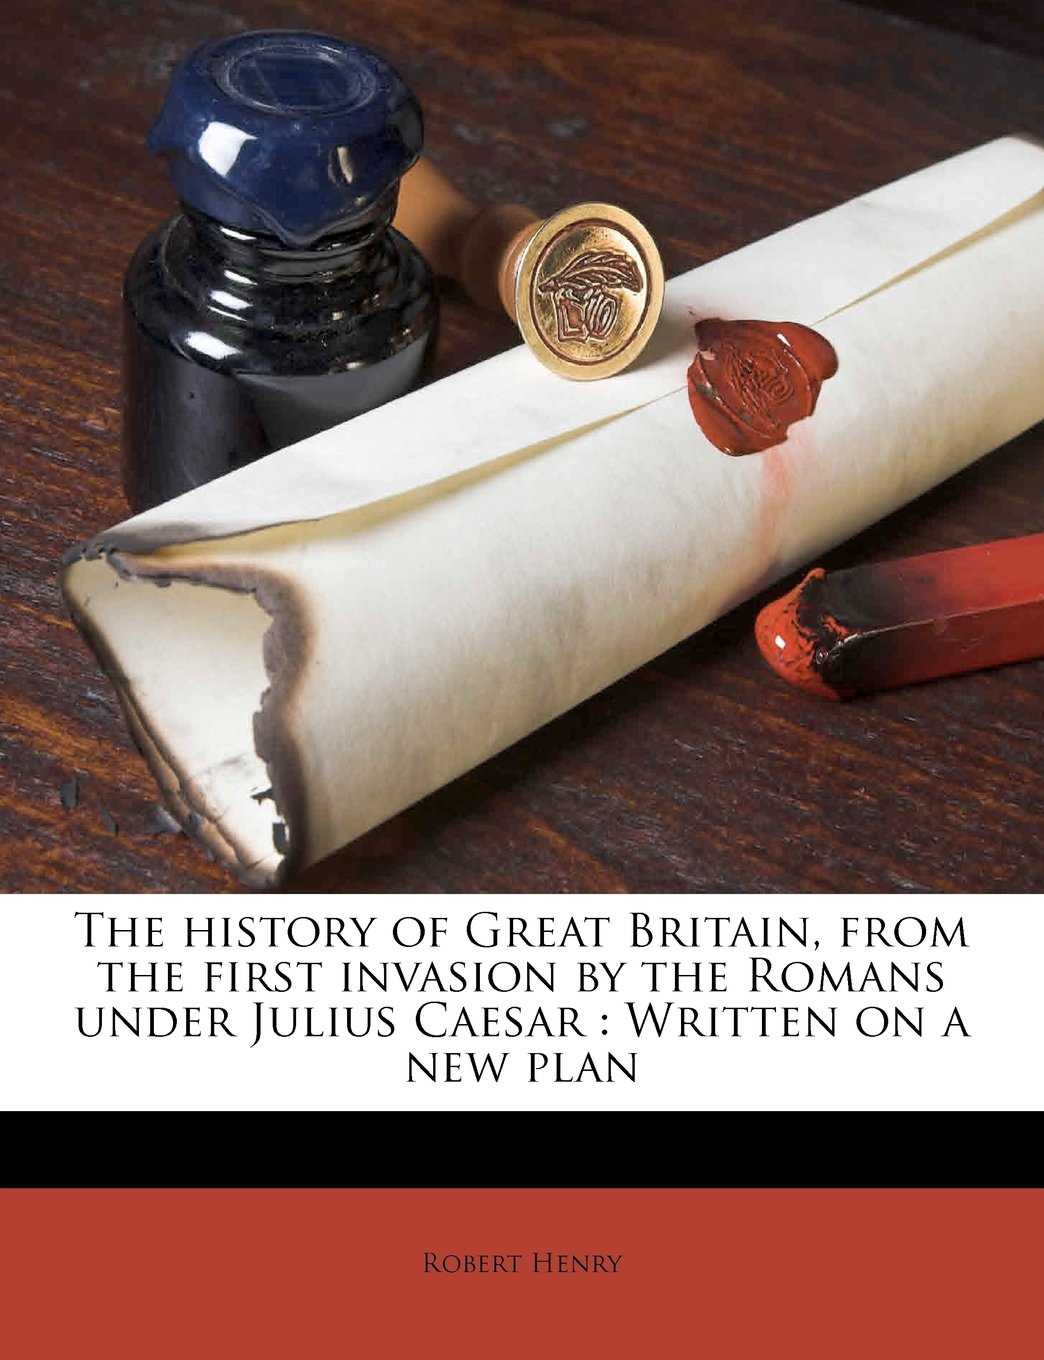 Download The history of Great Britain, from the first invasion by the Romans under Julius Caesar: Written on a new plan ebook